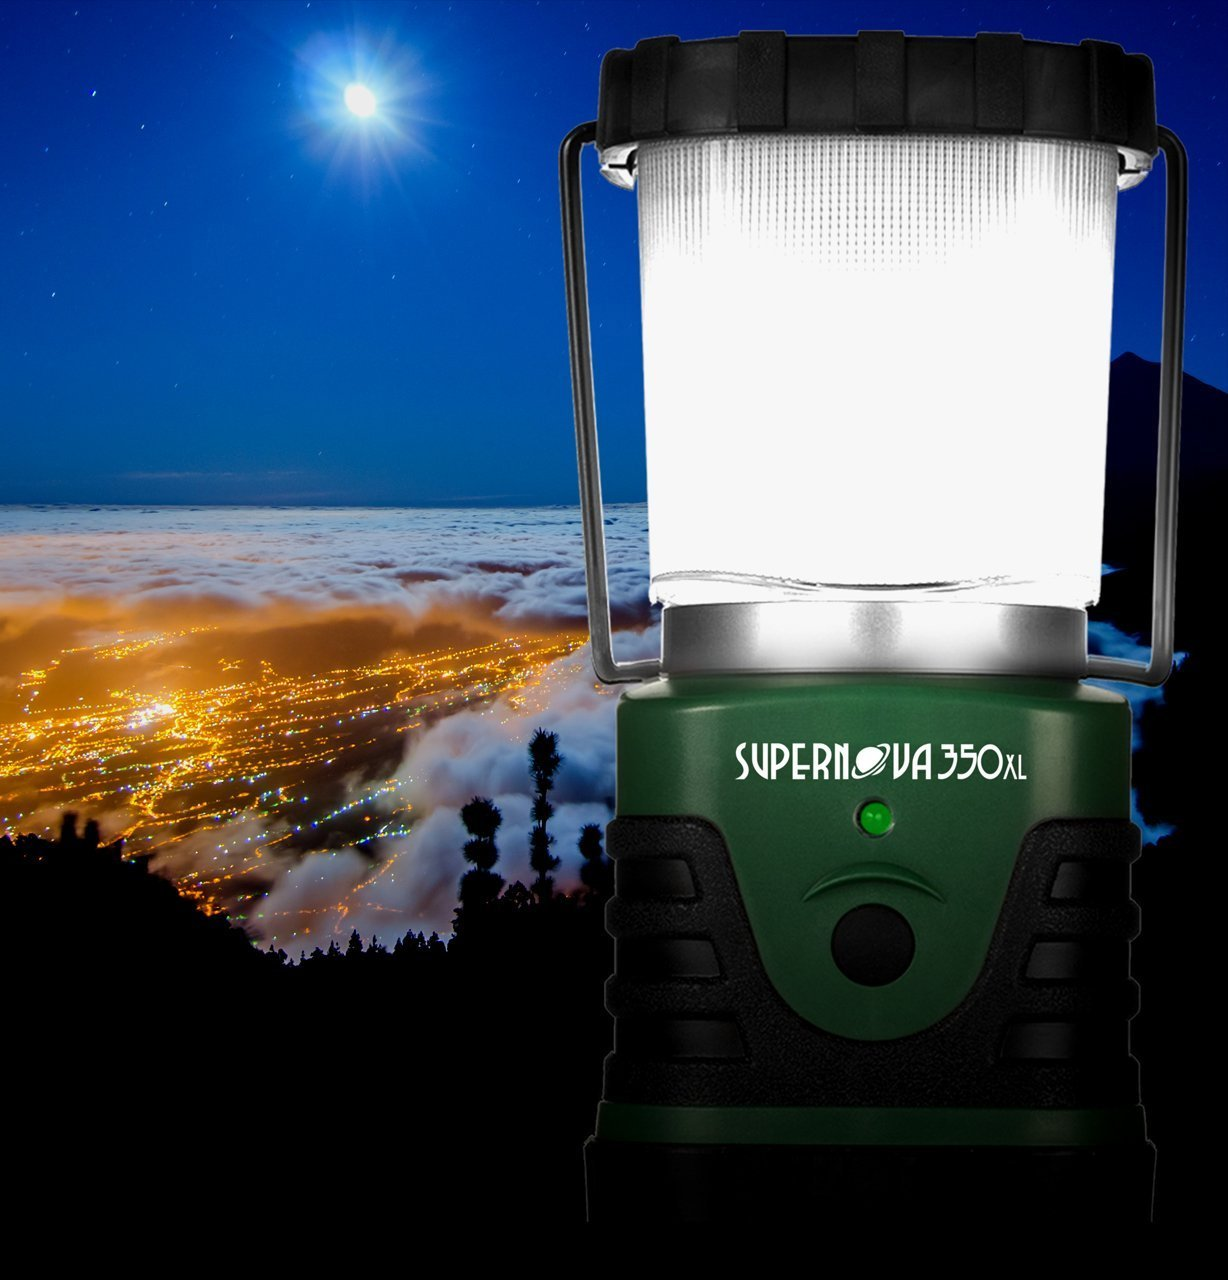 Supernova 500 Ultra Bright Camping /& Emergency LED Lantern Forest Green Intervine Consulting Inc.